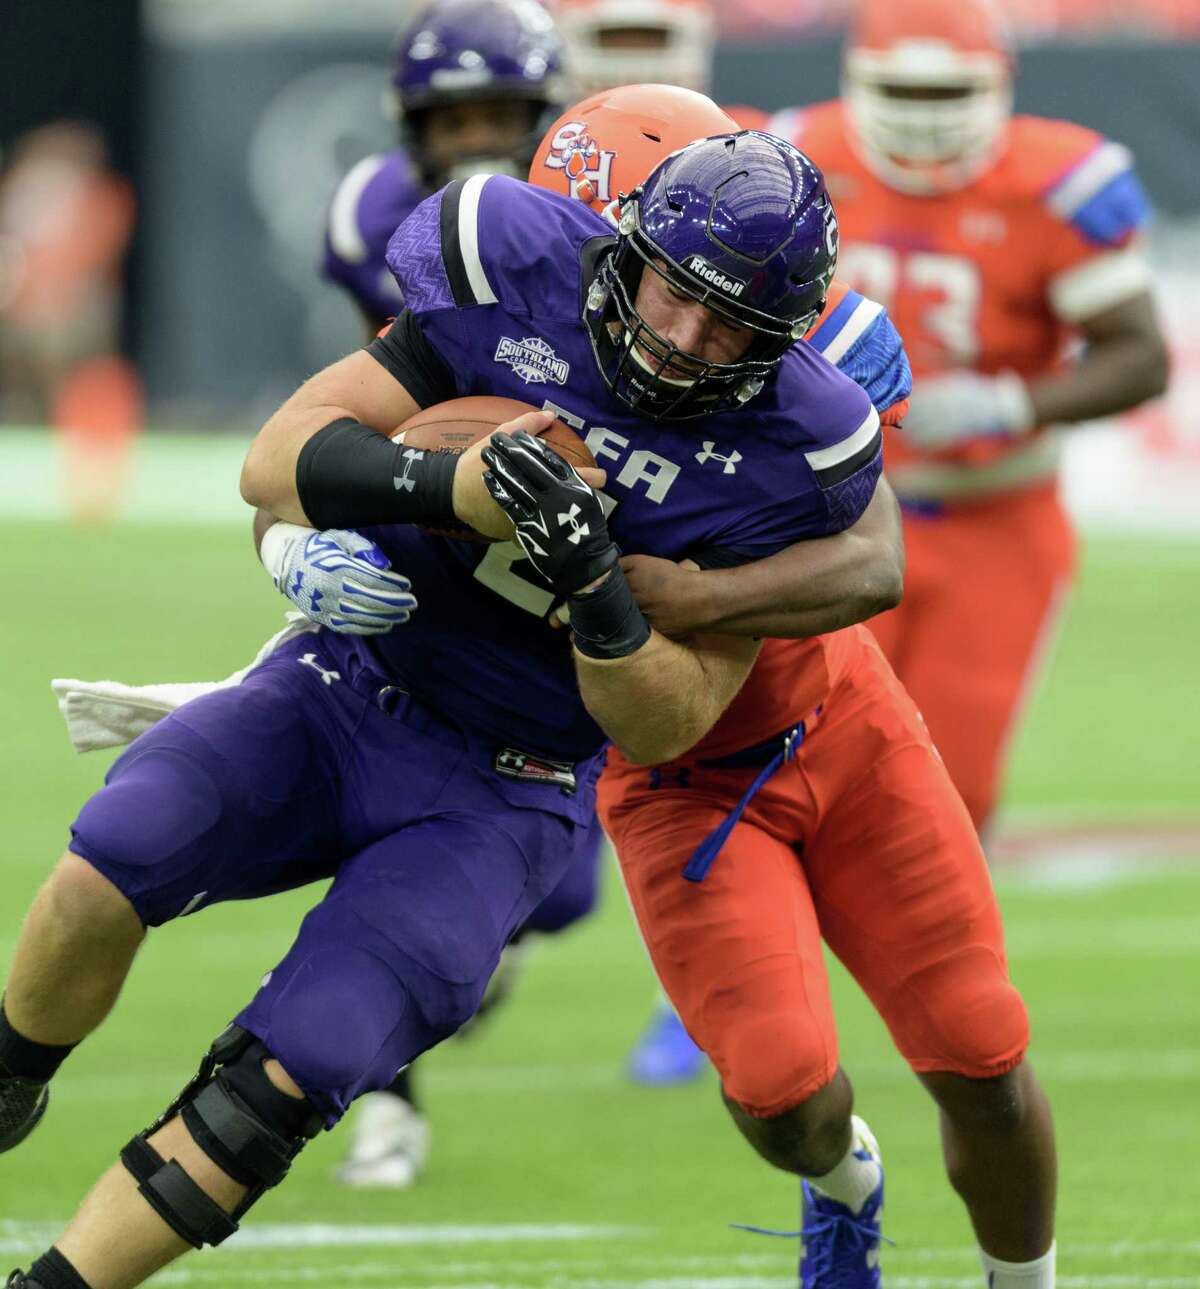 Zach Conquer (2) of the Stephen F. Austin Lumberjacks is brought down after making a short run in the first half against the Sam Houston State Bearkats during the 90th Battle Of The Piney Woods on Saturday, October 3, 2015 at NRG Stadium.